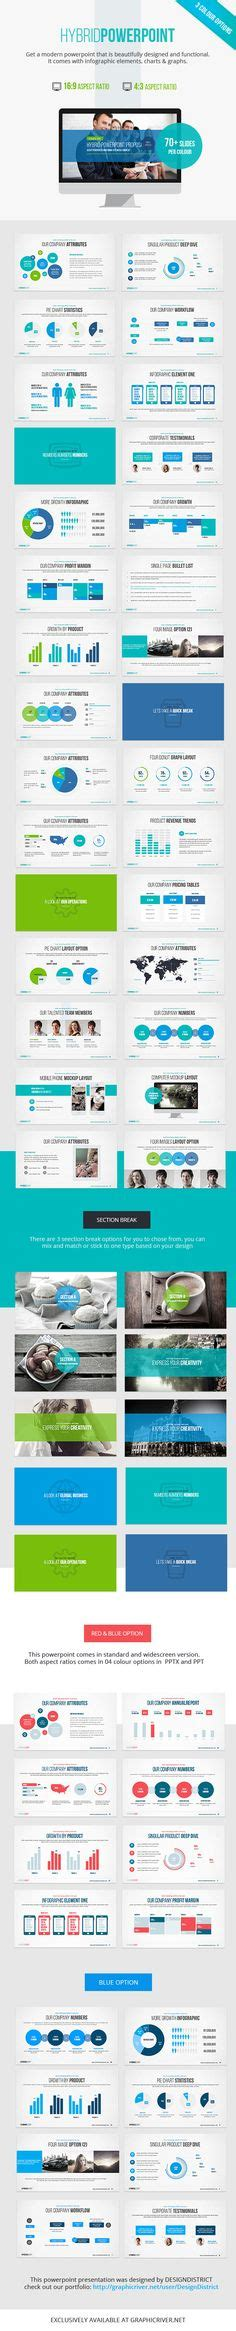 powerpoint template by design district via behance mevo powerpoint presentation template powerpoint